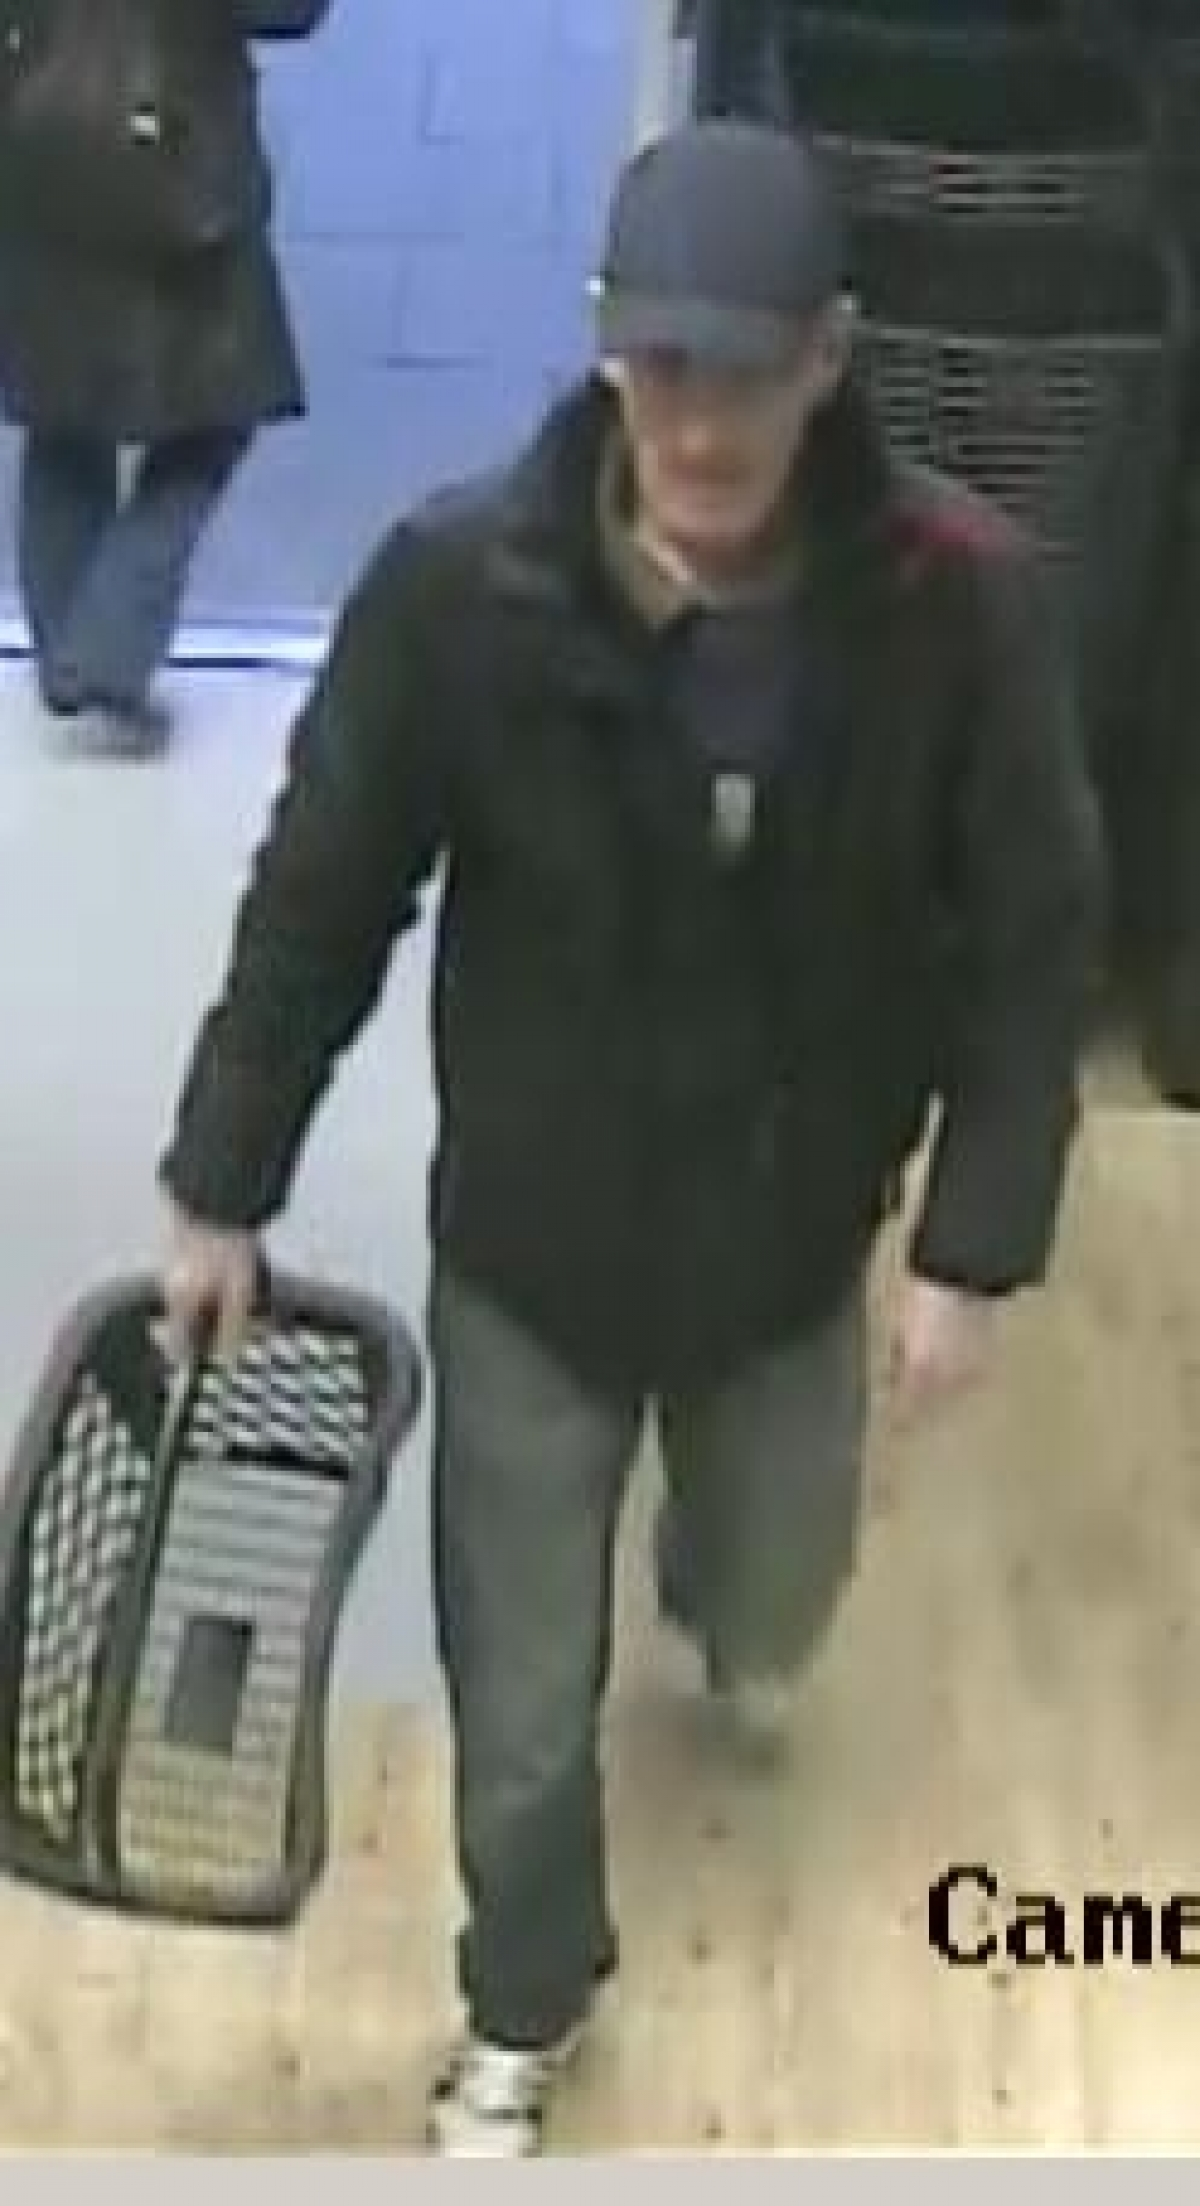 Police have released this CCTV image of the man they want to identify